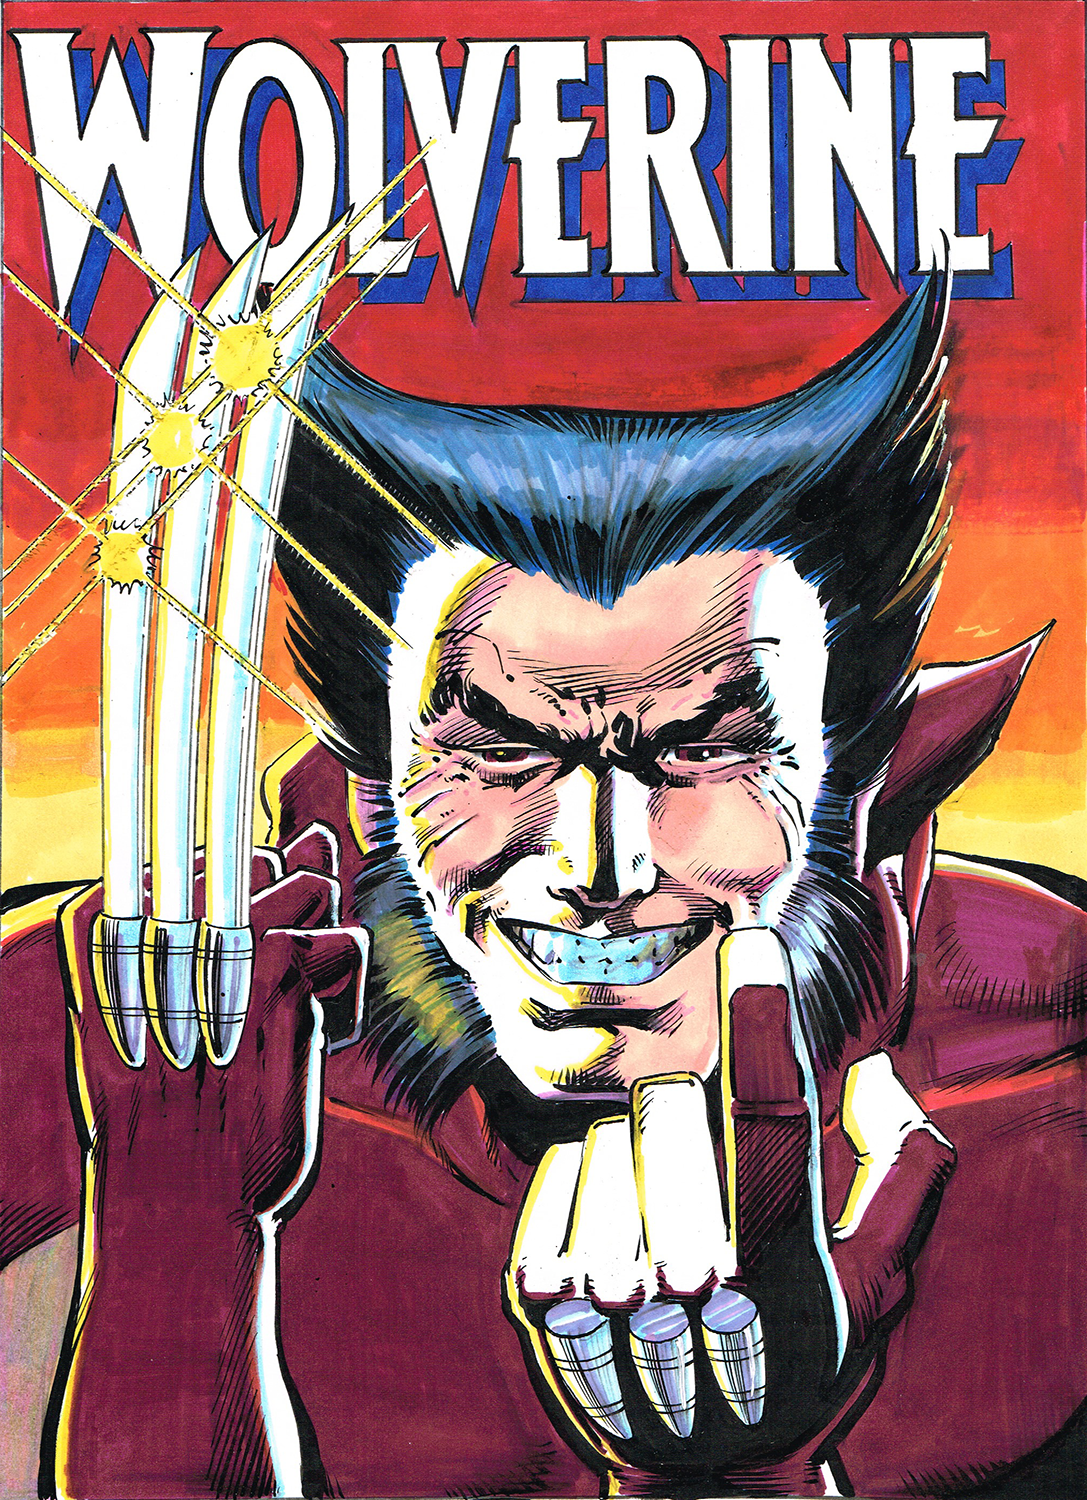 Recreation: Wolverine #1